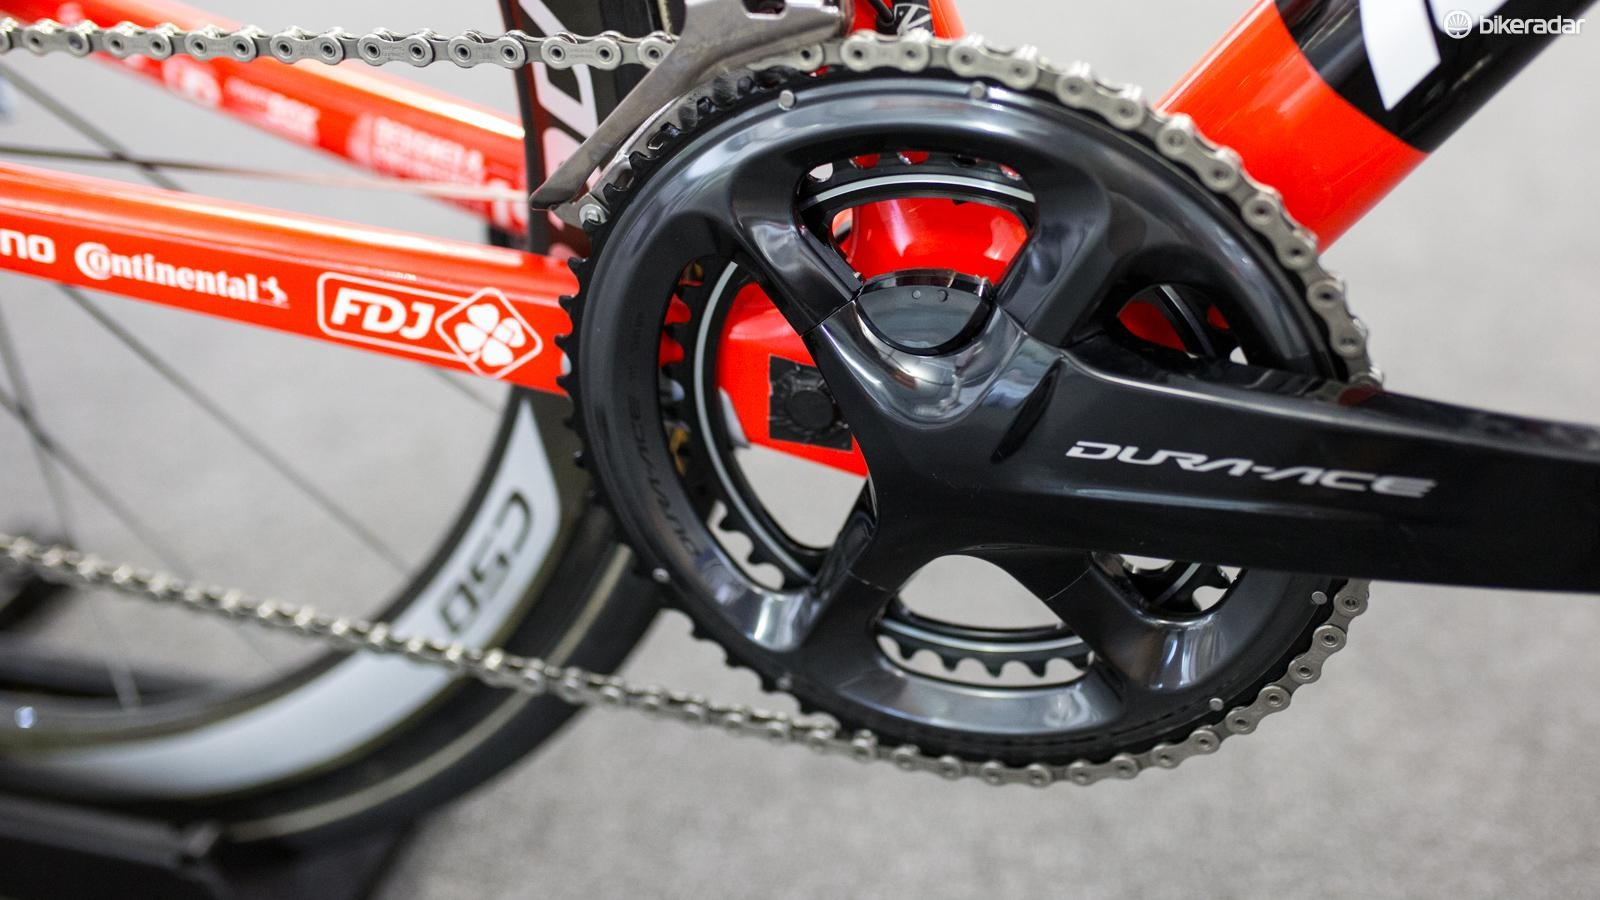 FDJ was the only team running Dura-Ace 9150 cranks at the Tour Down Under